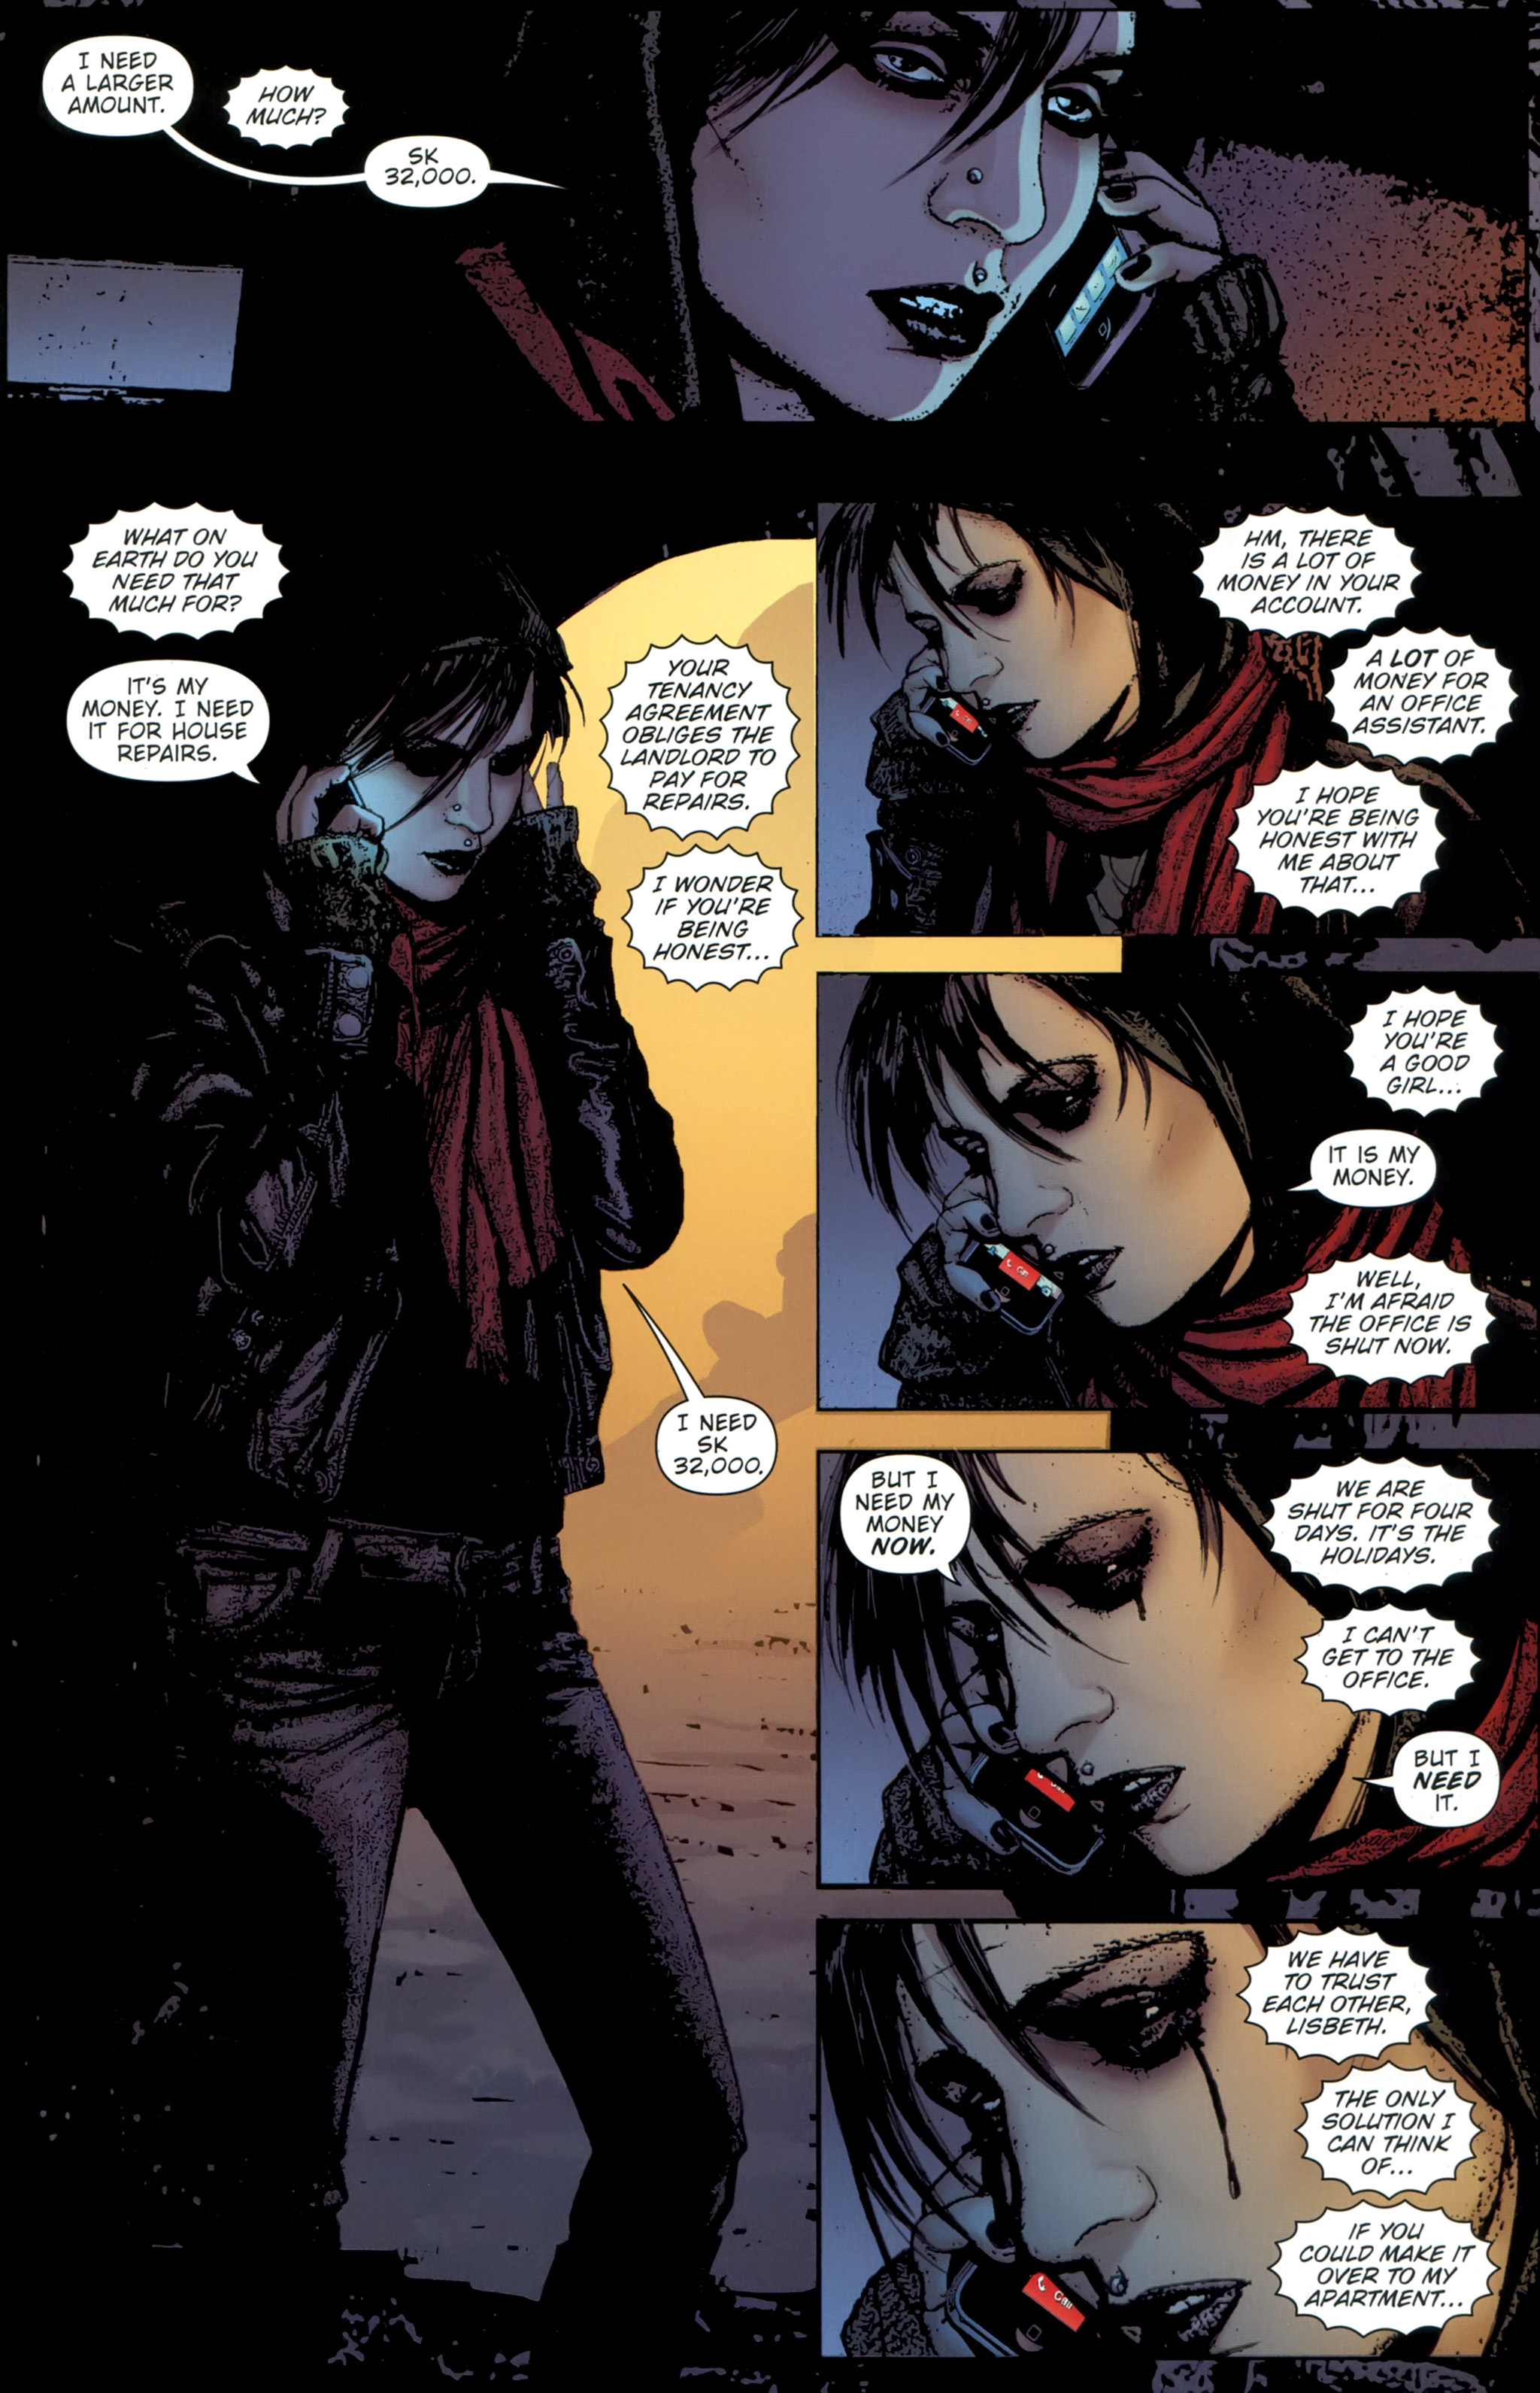 Read online The Girl With the Dragon Tattoo comic -  Issue # TPB 1 - 100